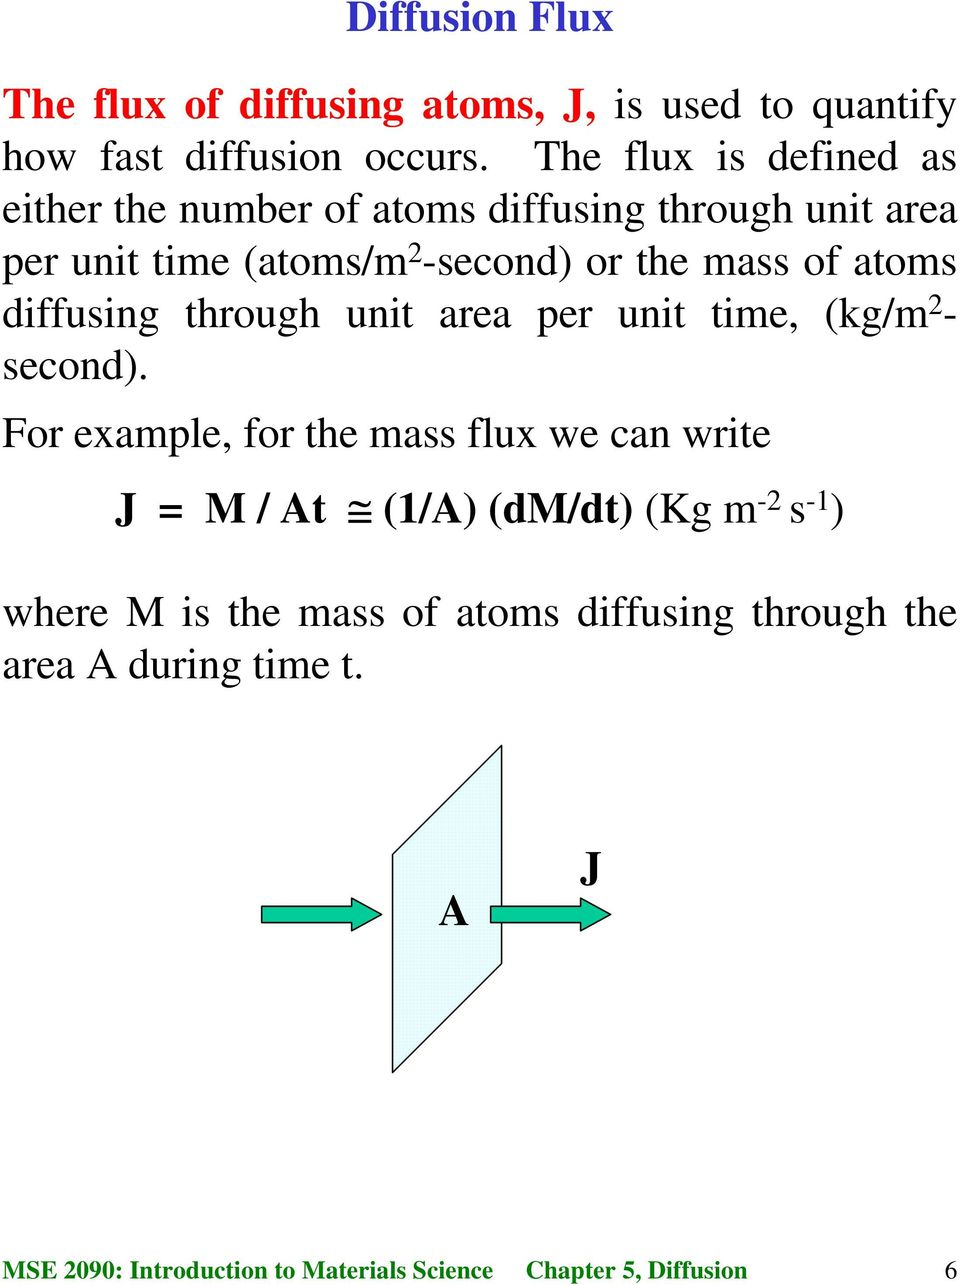 or the mass of atoms diffusing through unit area per unit time, (kg/m 2 - second).